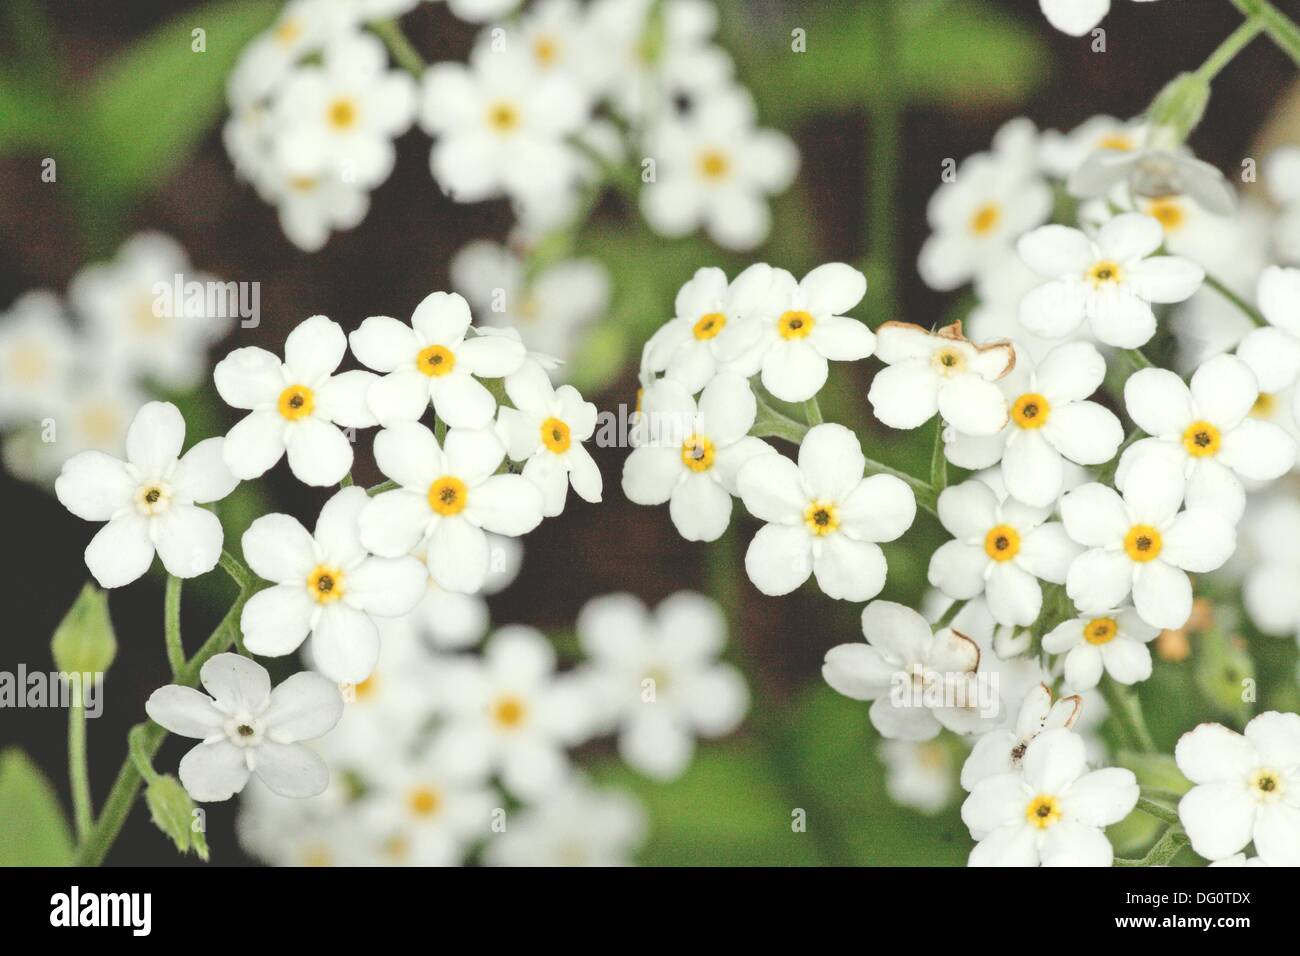 Fragile Blossoms Stock Photos Fragile Blossoms Stock Images Alamy